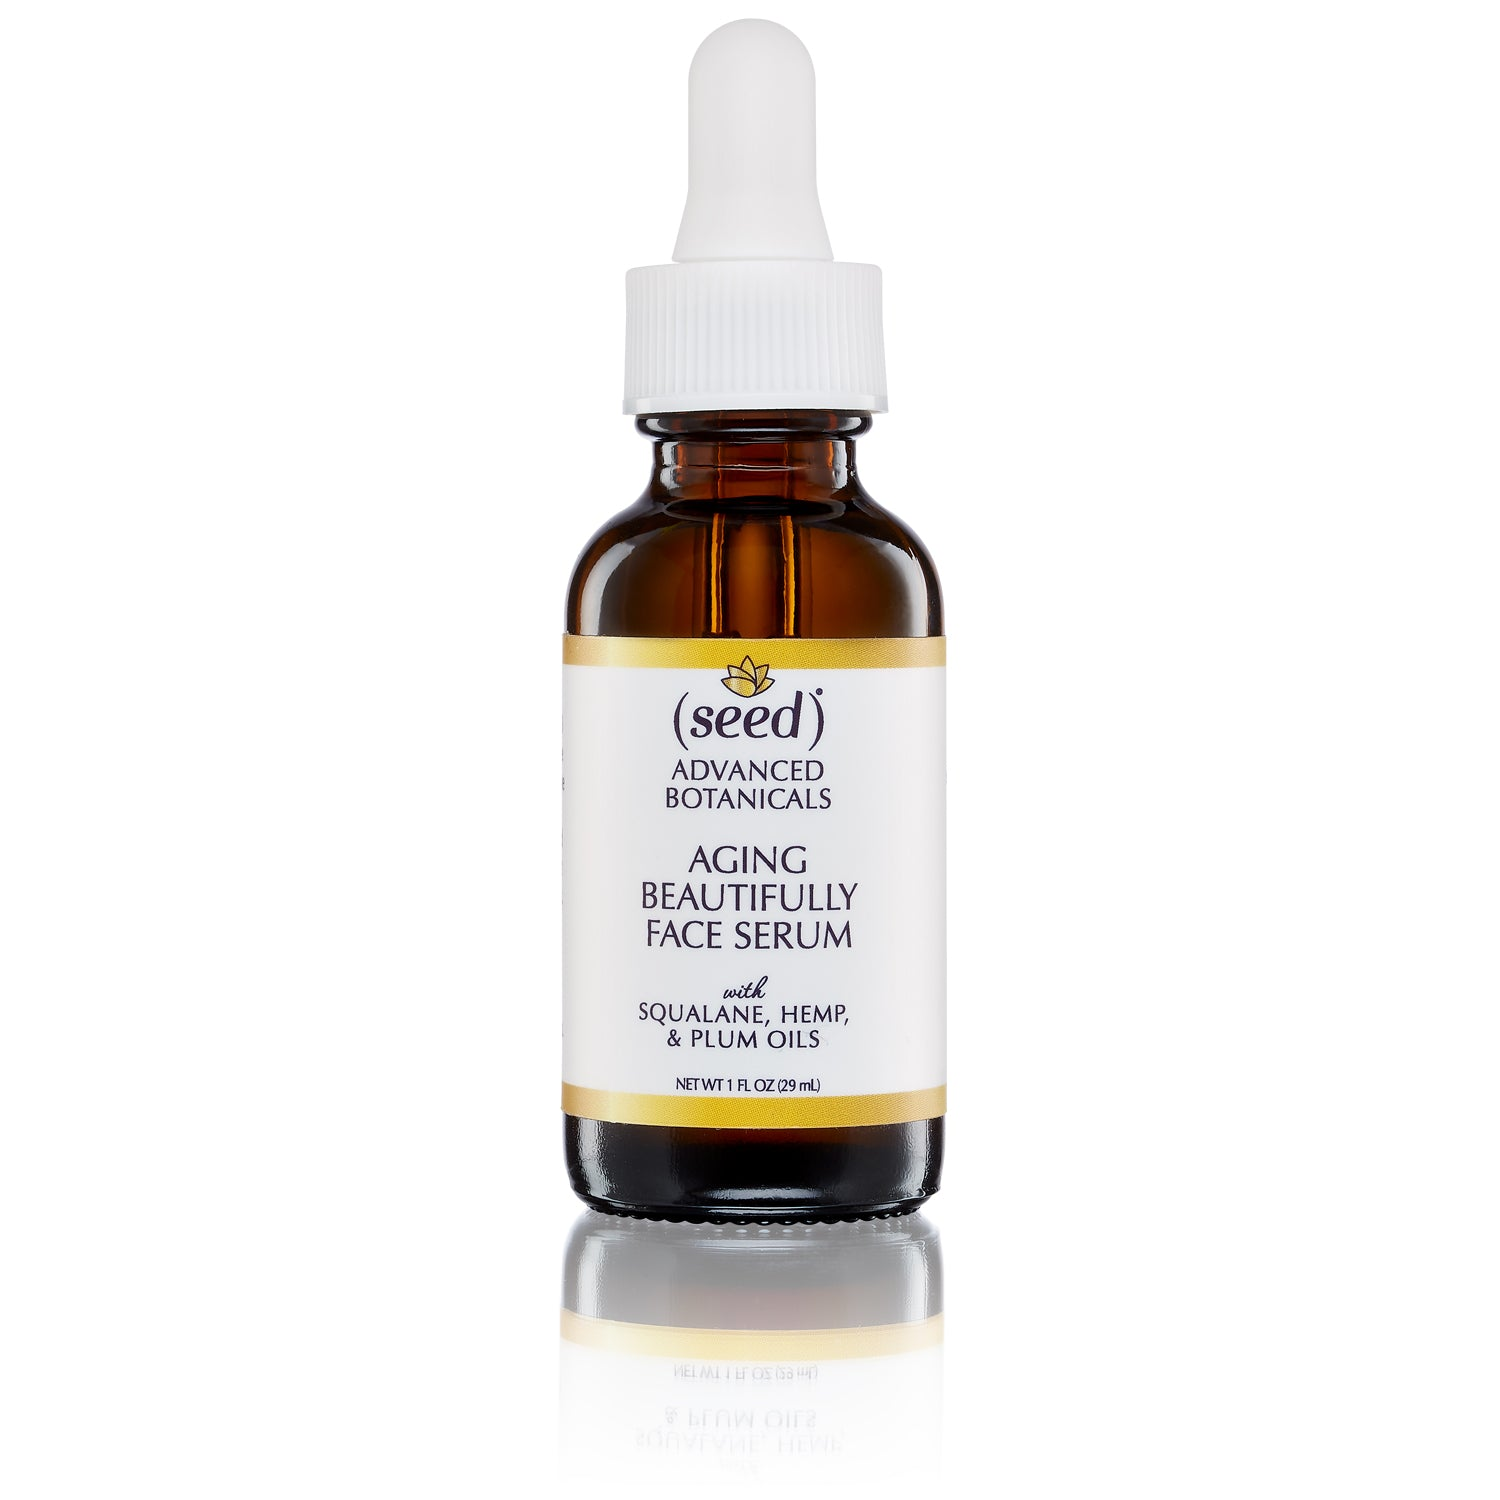 Seed Advanced Botanicals Aging Beautifully Face Serum